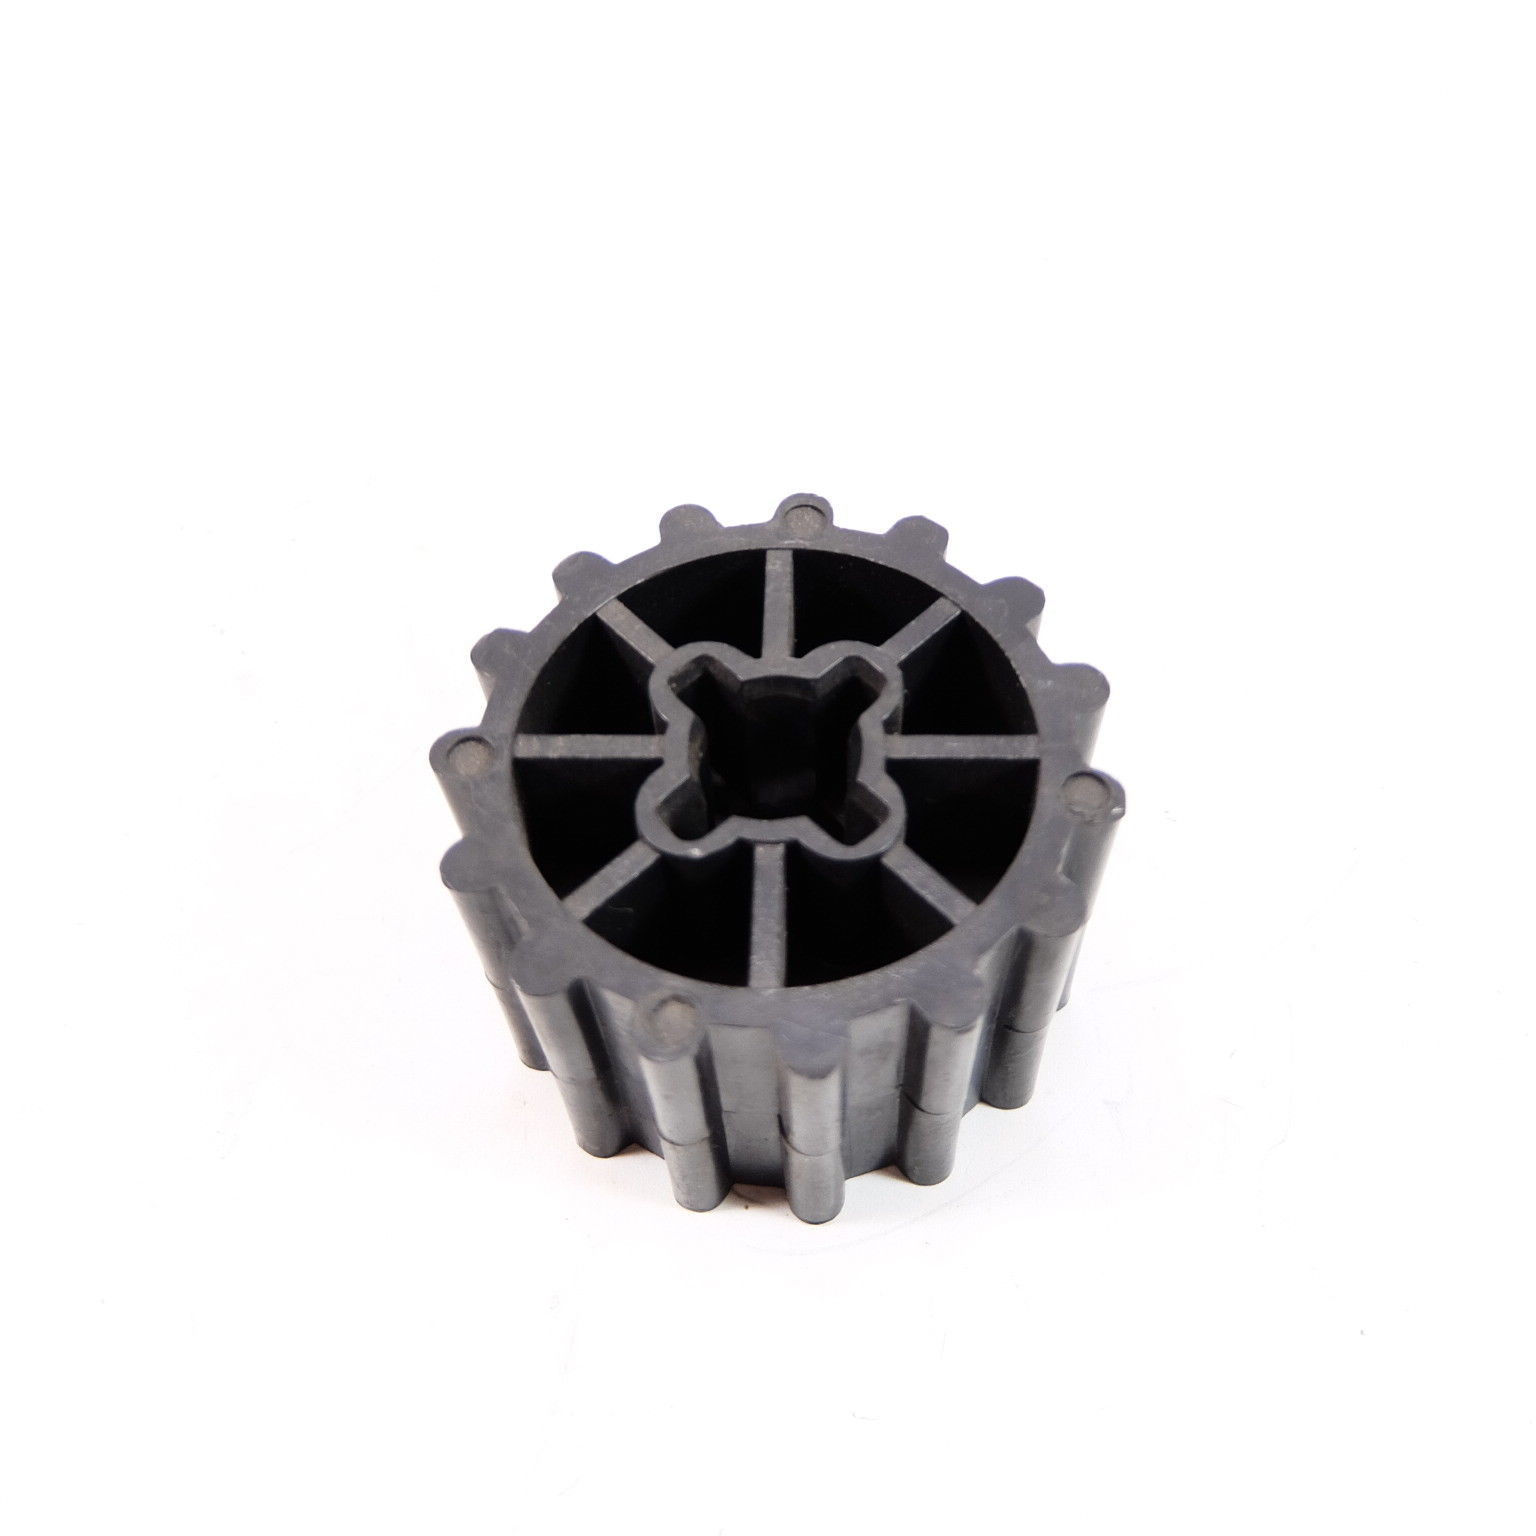 "Primary image for Drive Gear for S/Propelled Murray 20066 5/8"" I.D. X 2-3/4"" O.D. X 1 3/4"" Long"